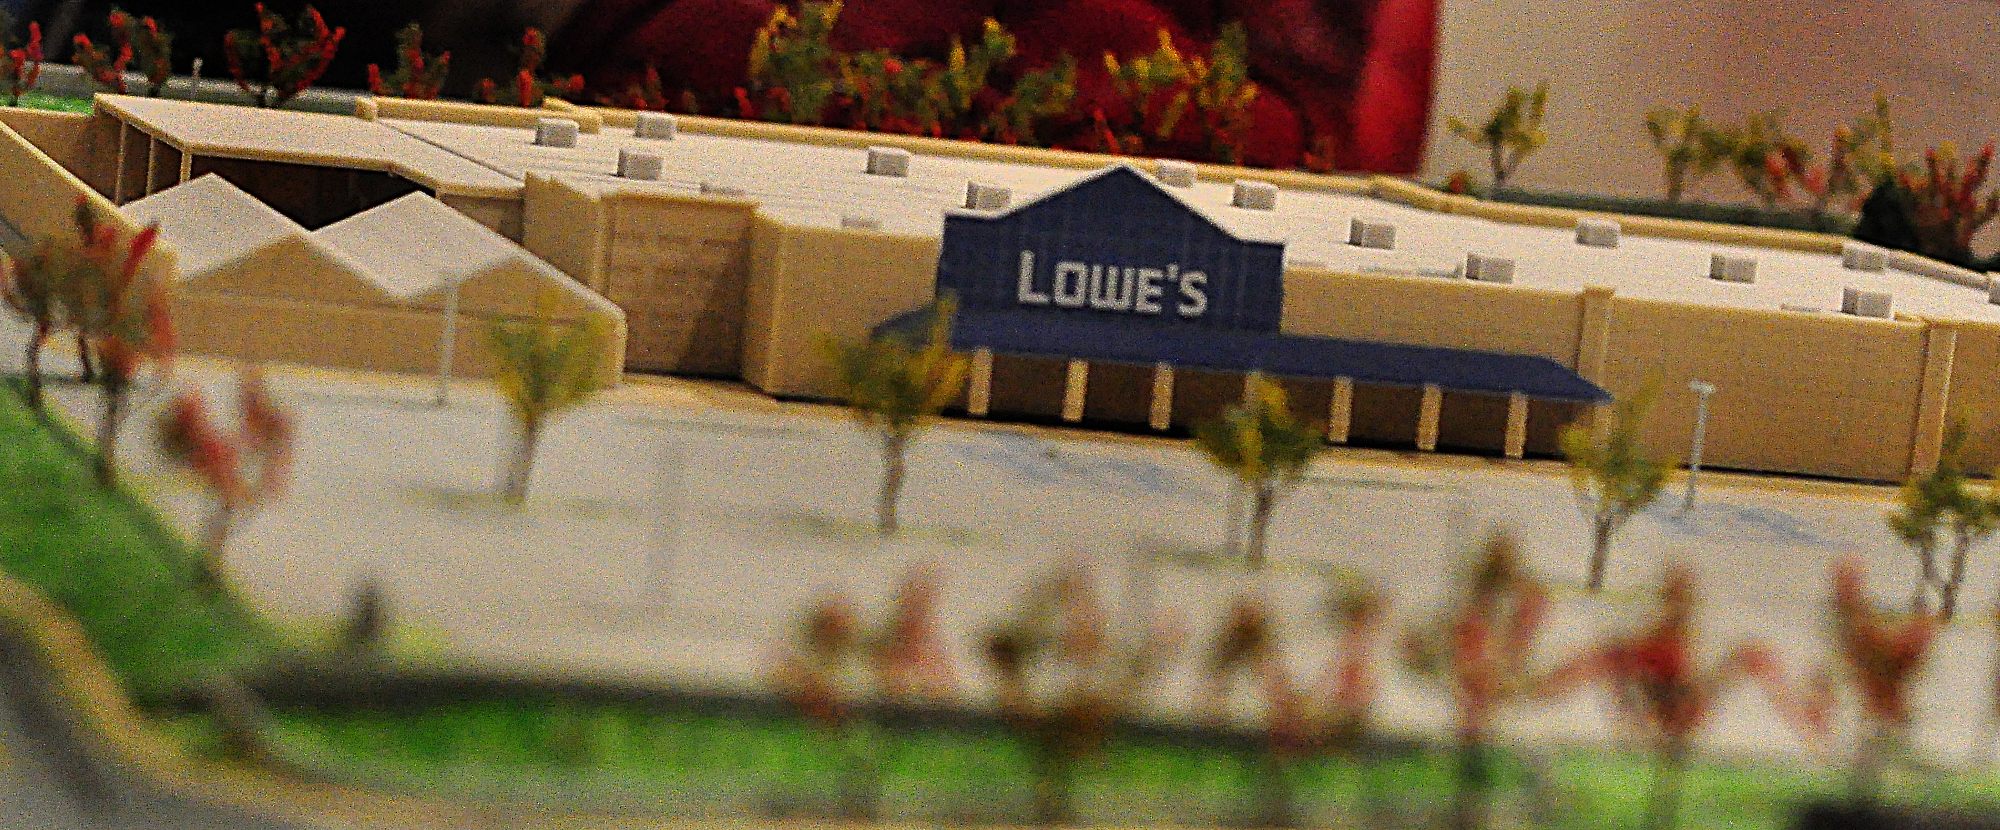 Lowe S Presents Plans To Norwalk Zoning Commission Nancy